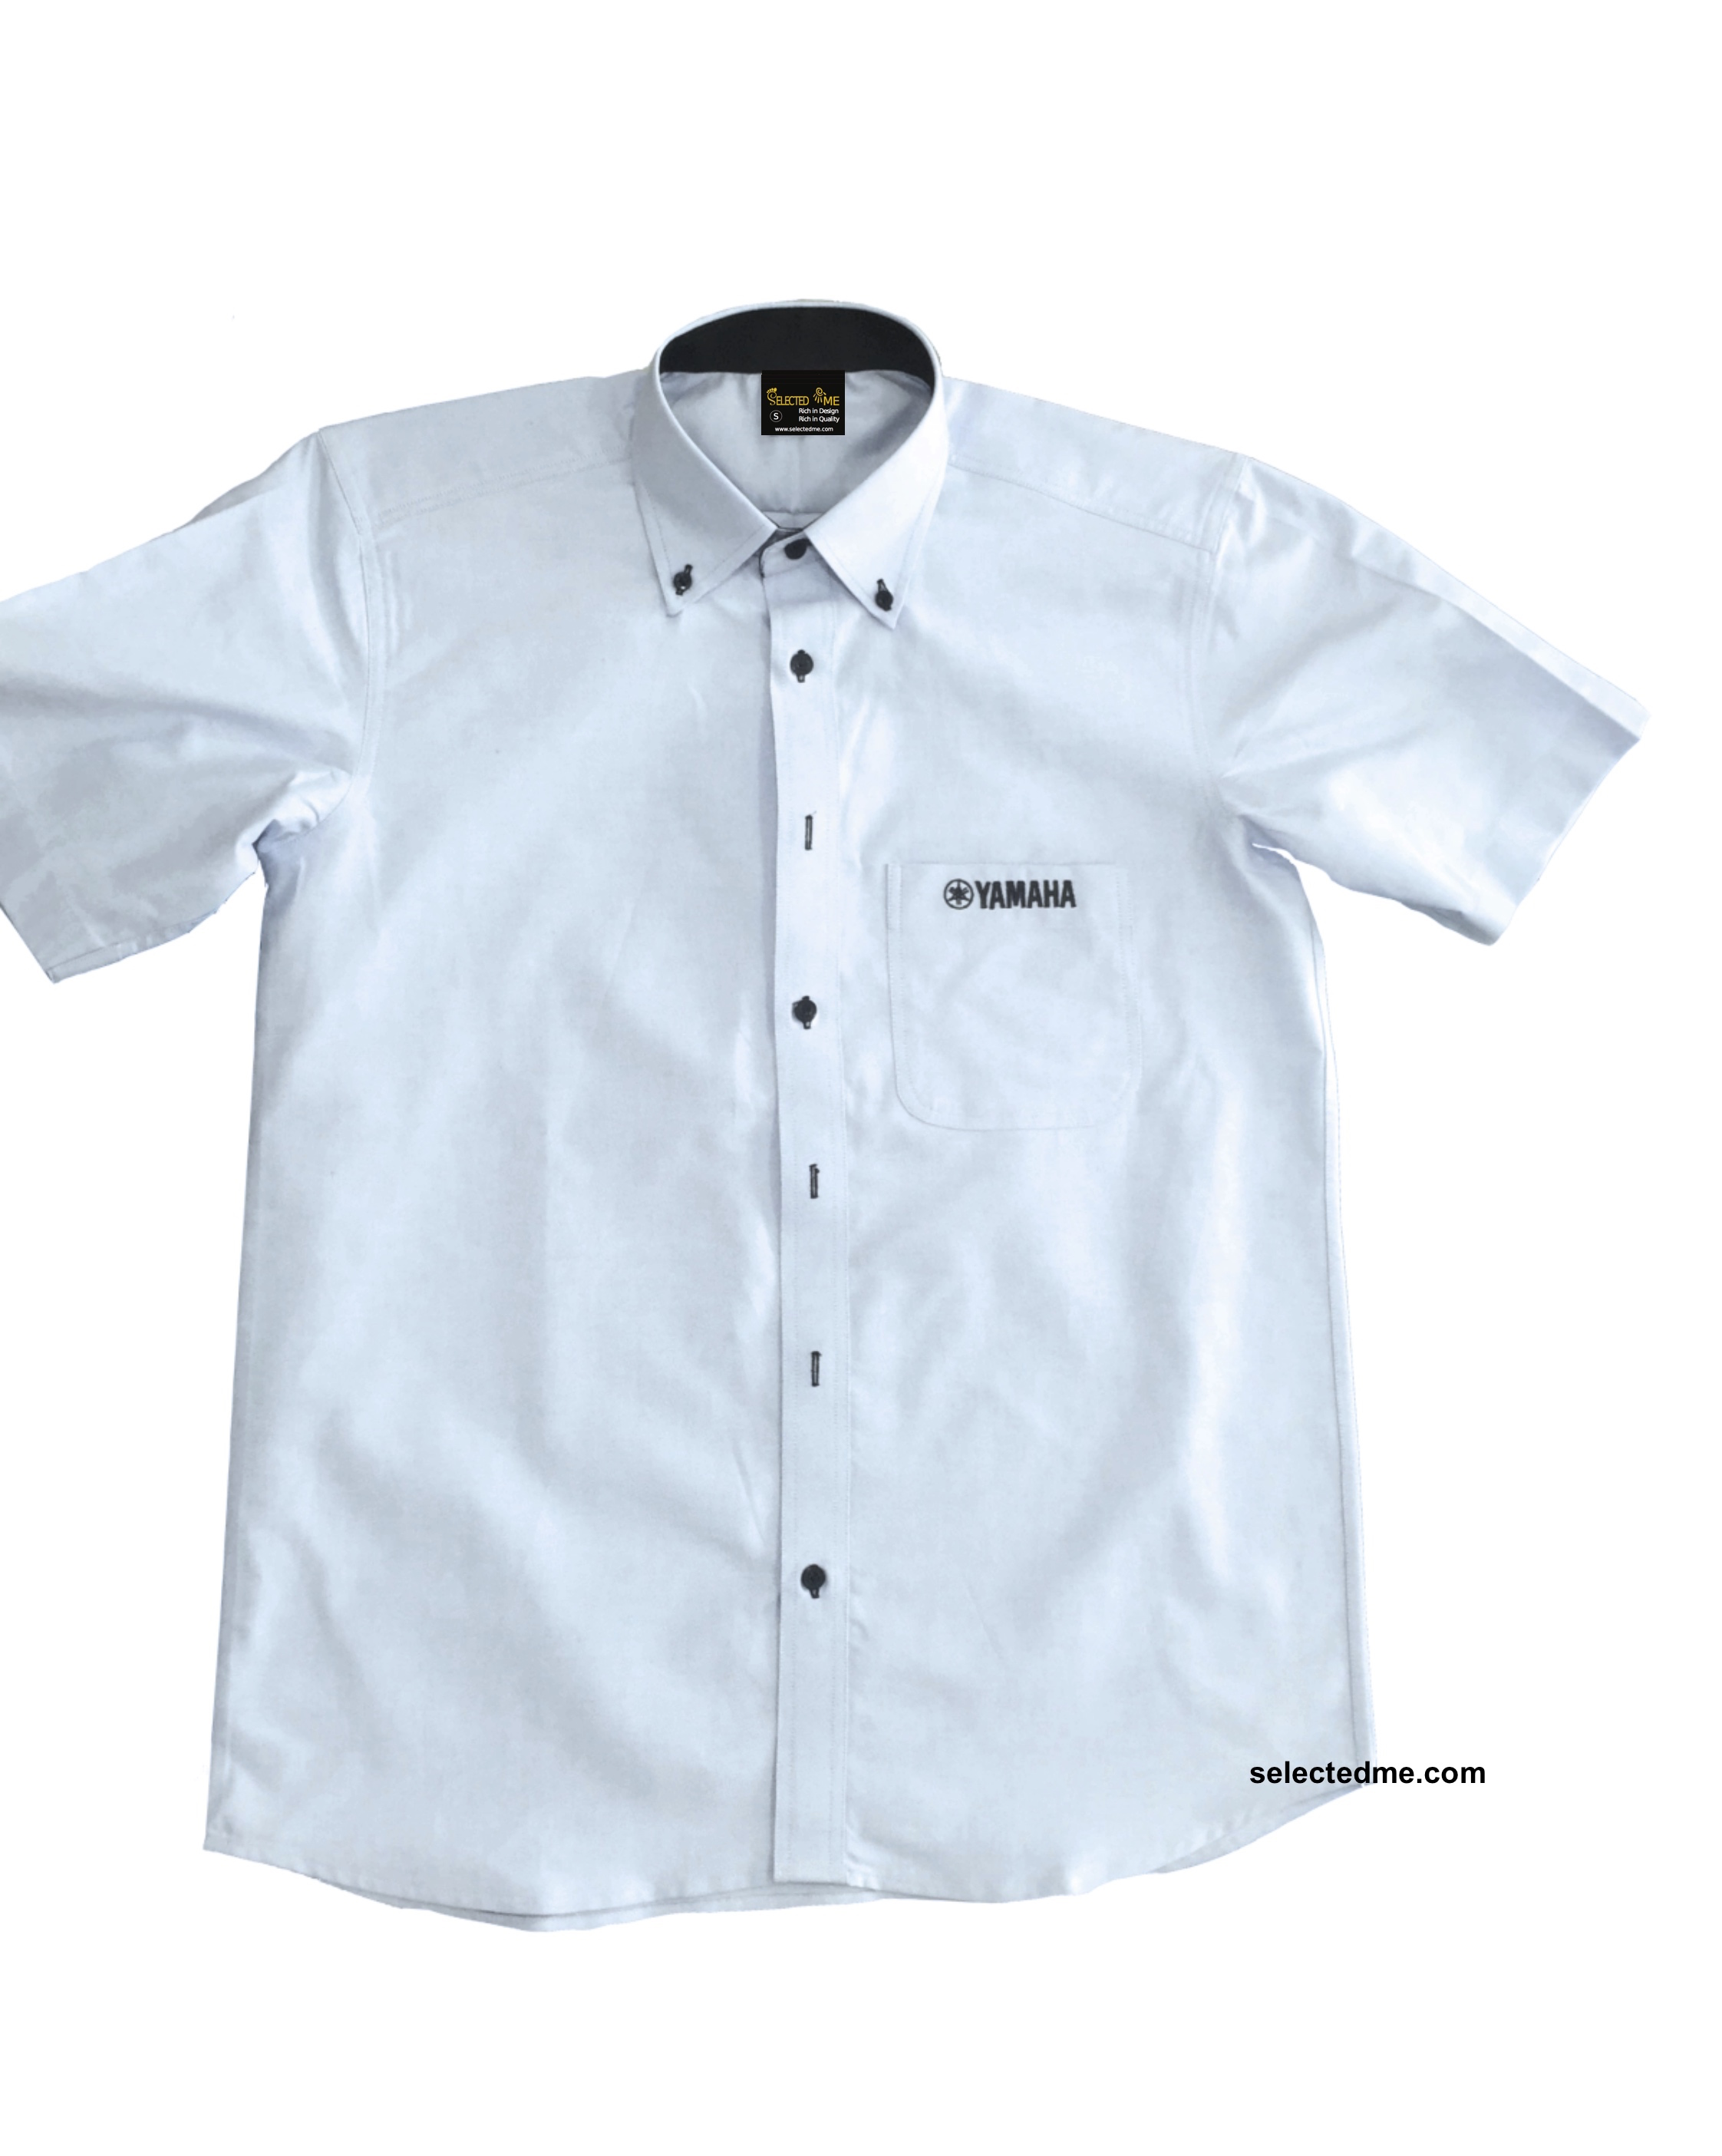 Uniform Shirts - Workwear shirts wholesale. Branded shirts Wholesaler